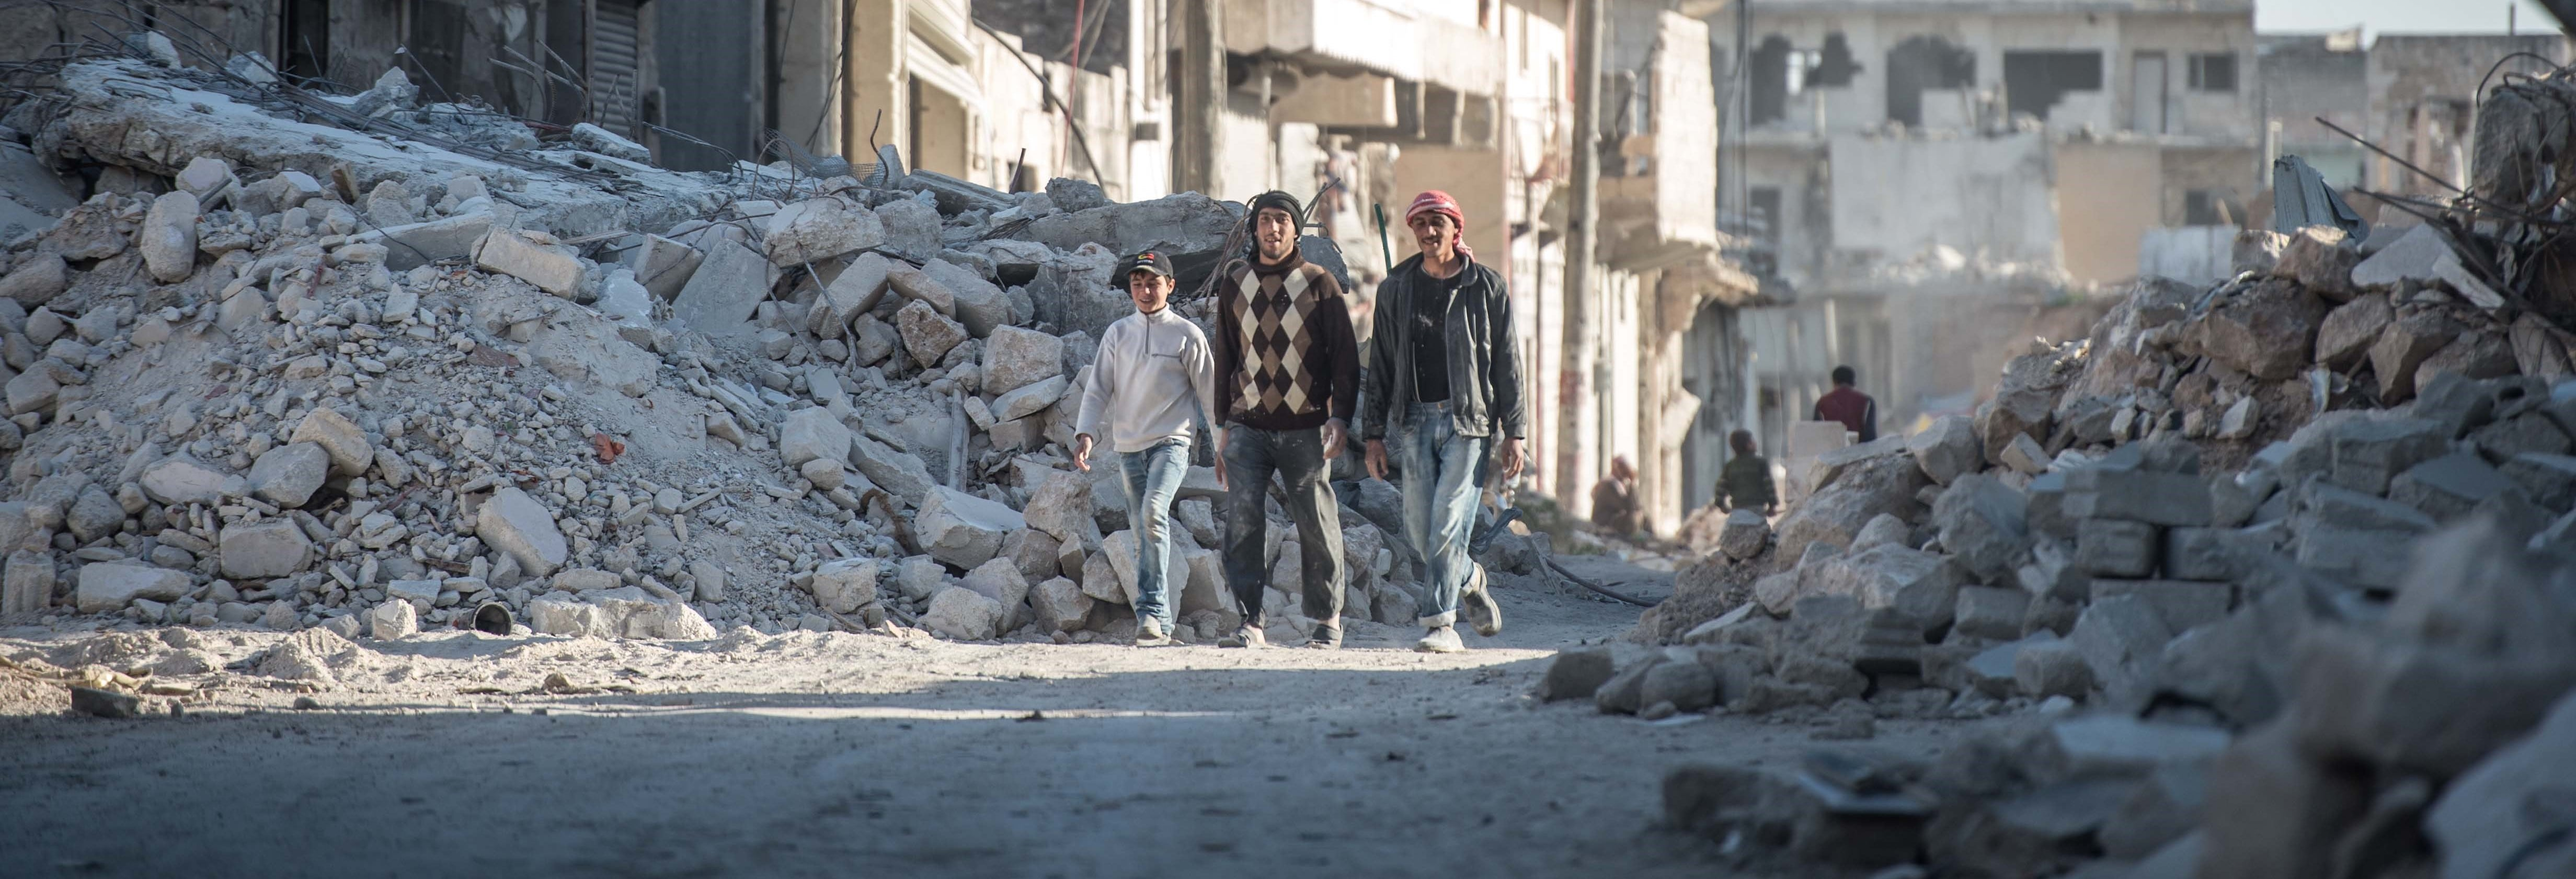 Syrians walk past damaged houses in Al-Bab district of Aleppo, Syria (Photo: Kerem Kocalar/Anadolu Agency/Getty Images)